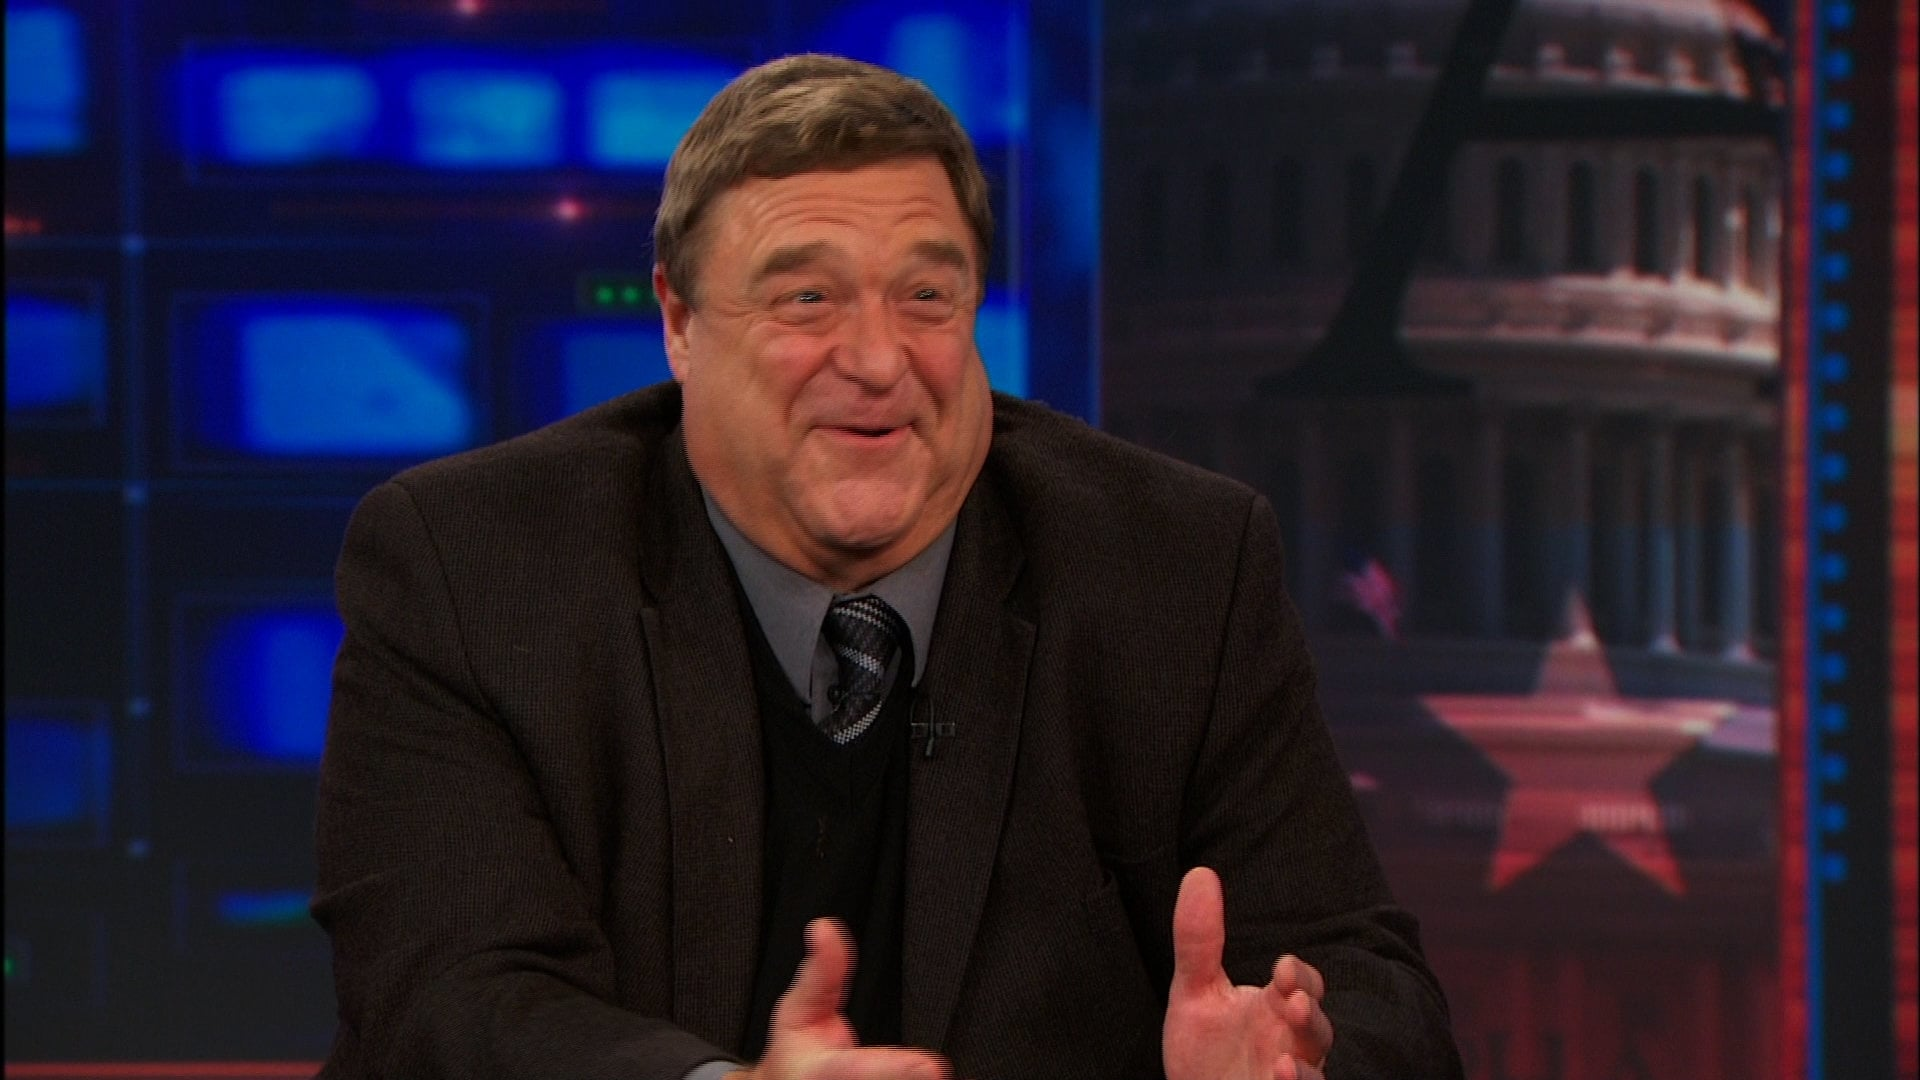 The Daily Show with Trevor Noah Season 19 :Episode 18  John Goodman